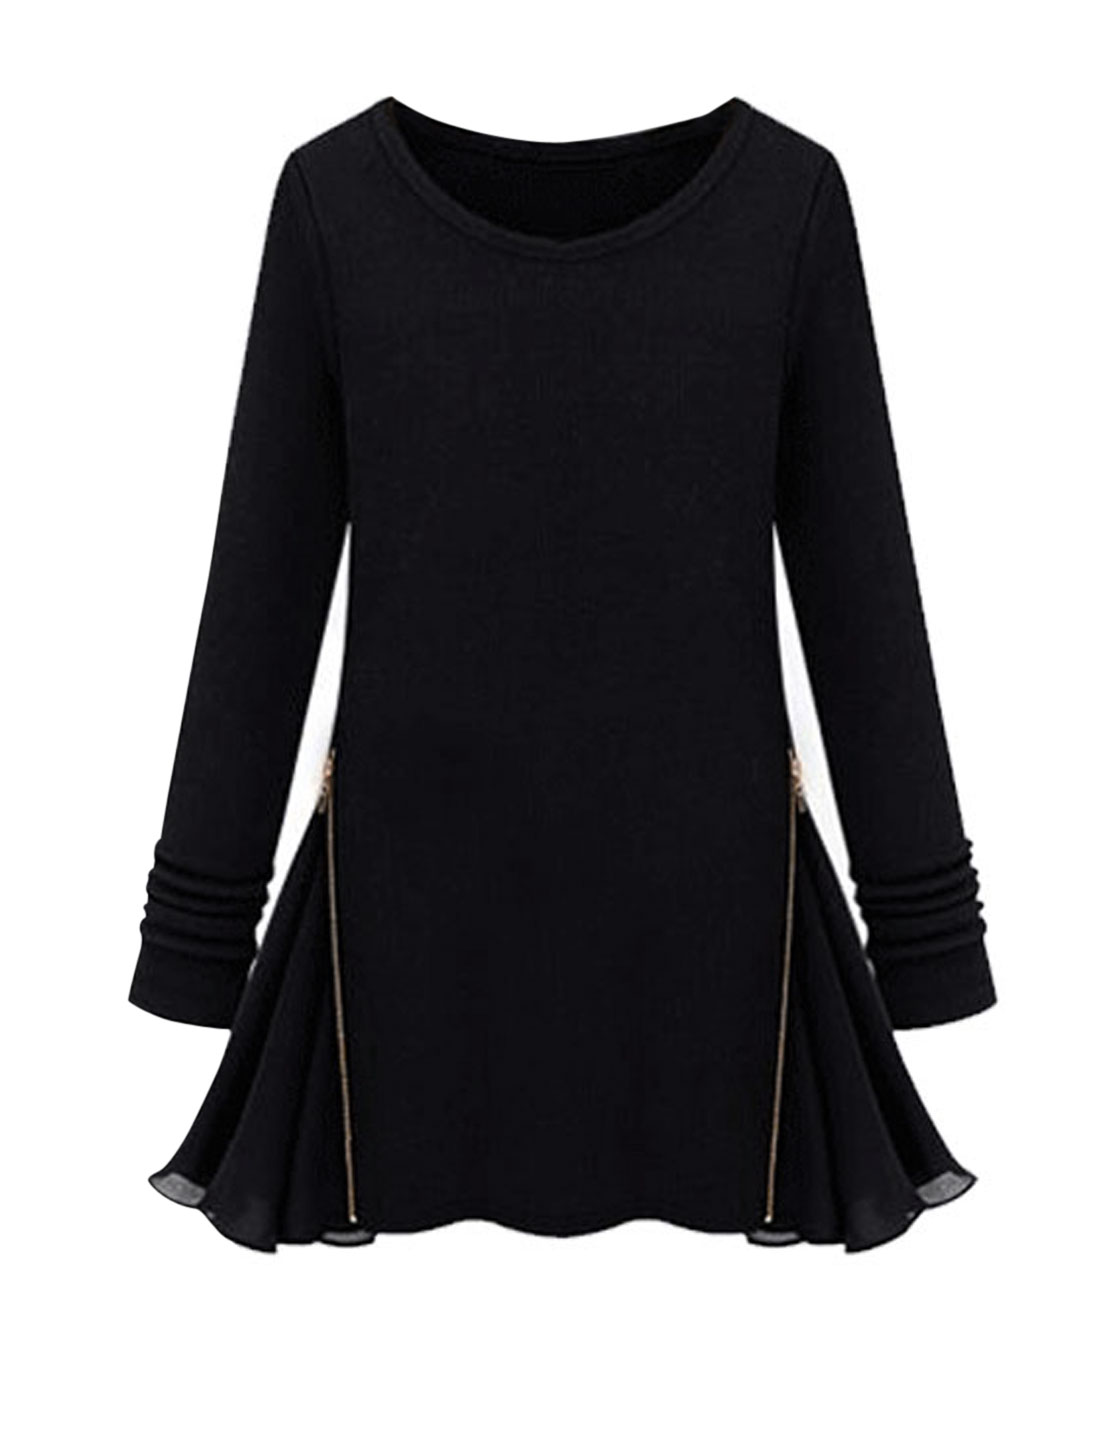 Lady Long Sleeve Zipper Decor Chiffon Patchwork Tunic Top Black S